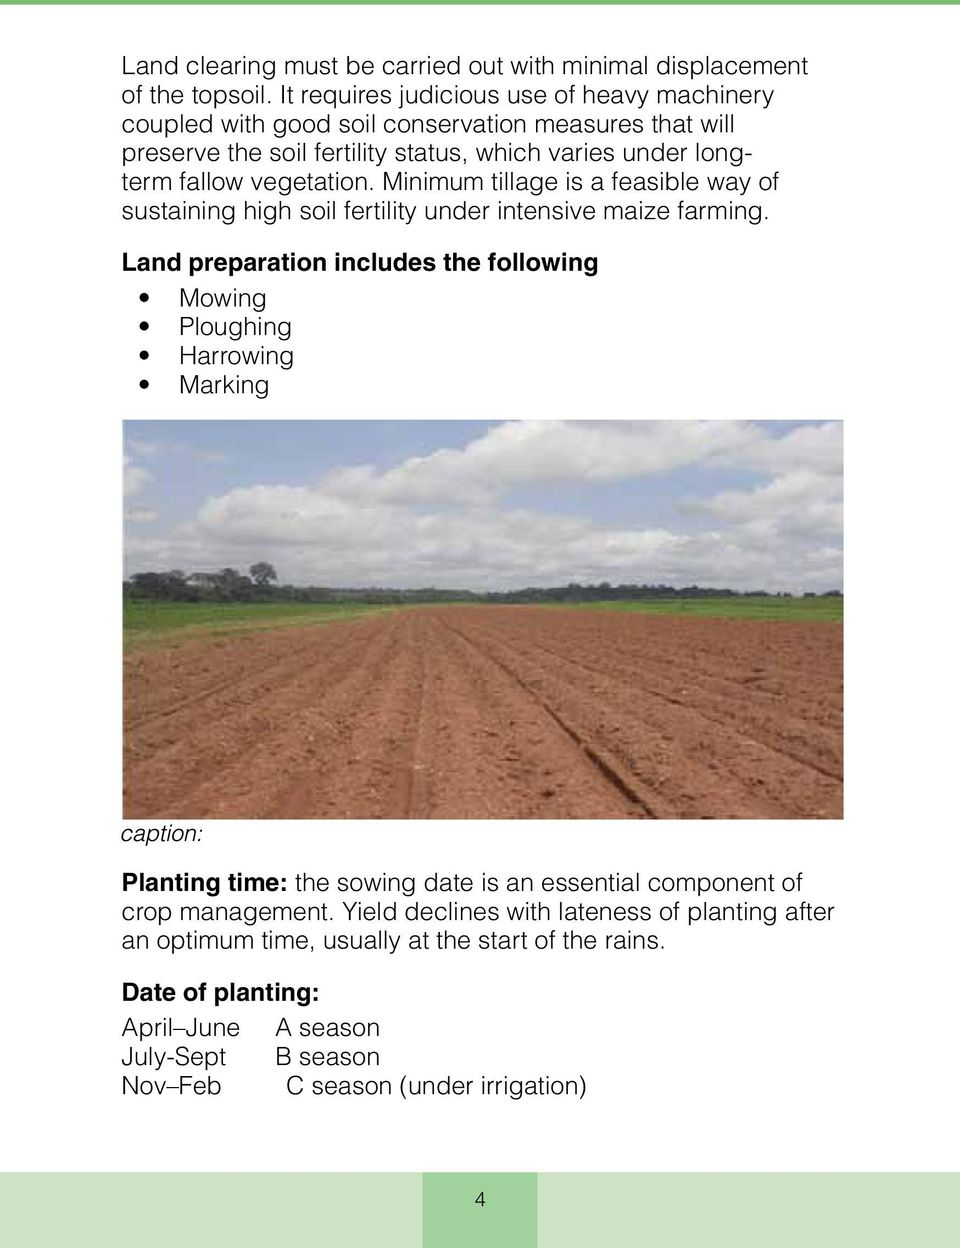 vegetation. Minimum tillage is a feasible way of sustaining high soil fertility under intensive maize farming.